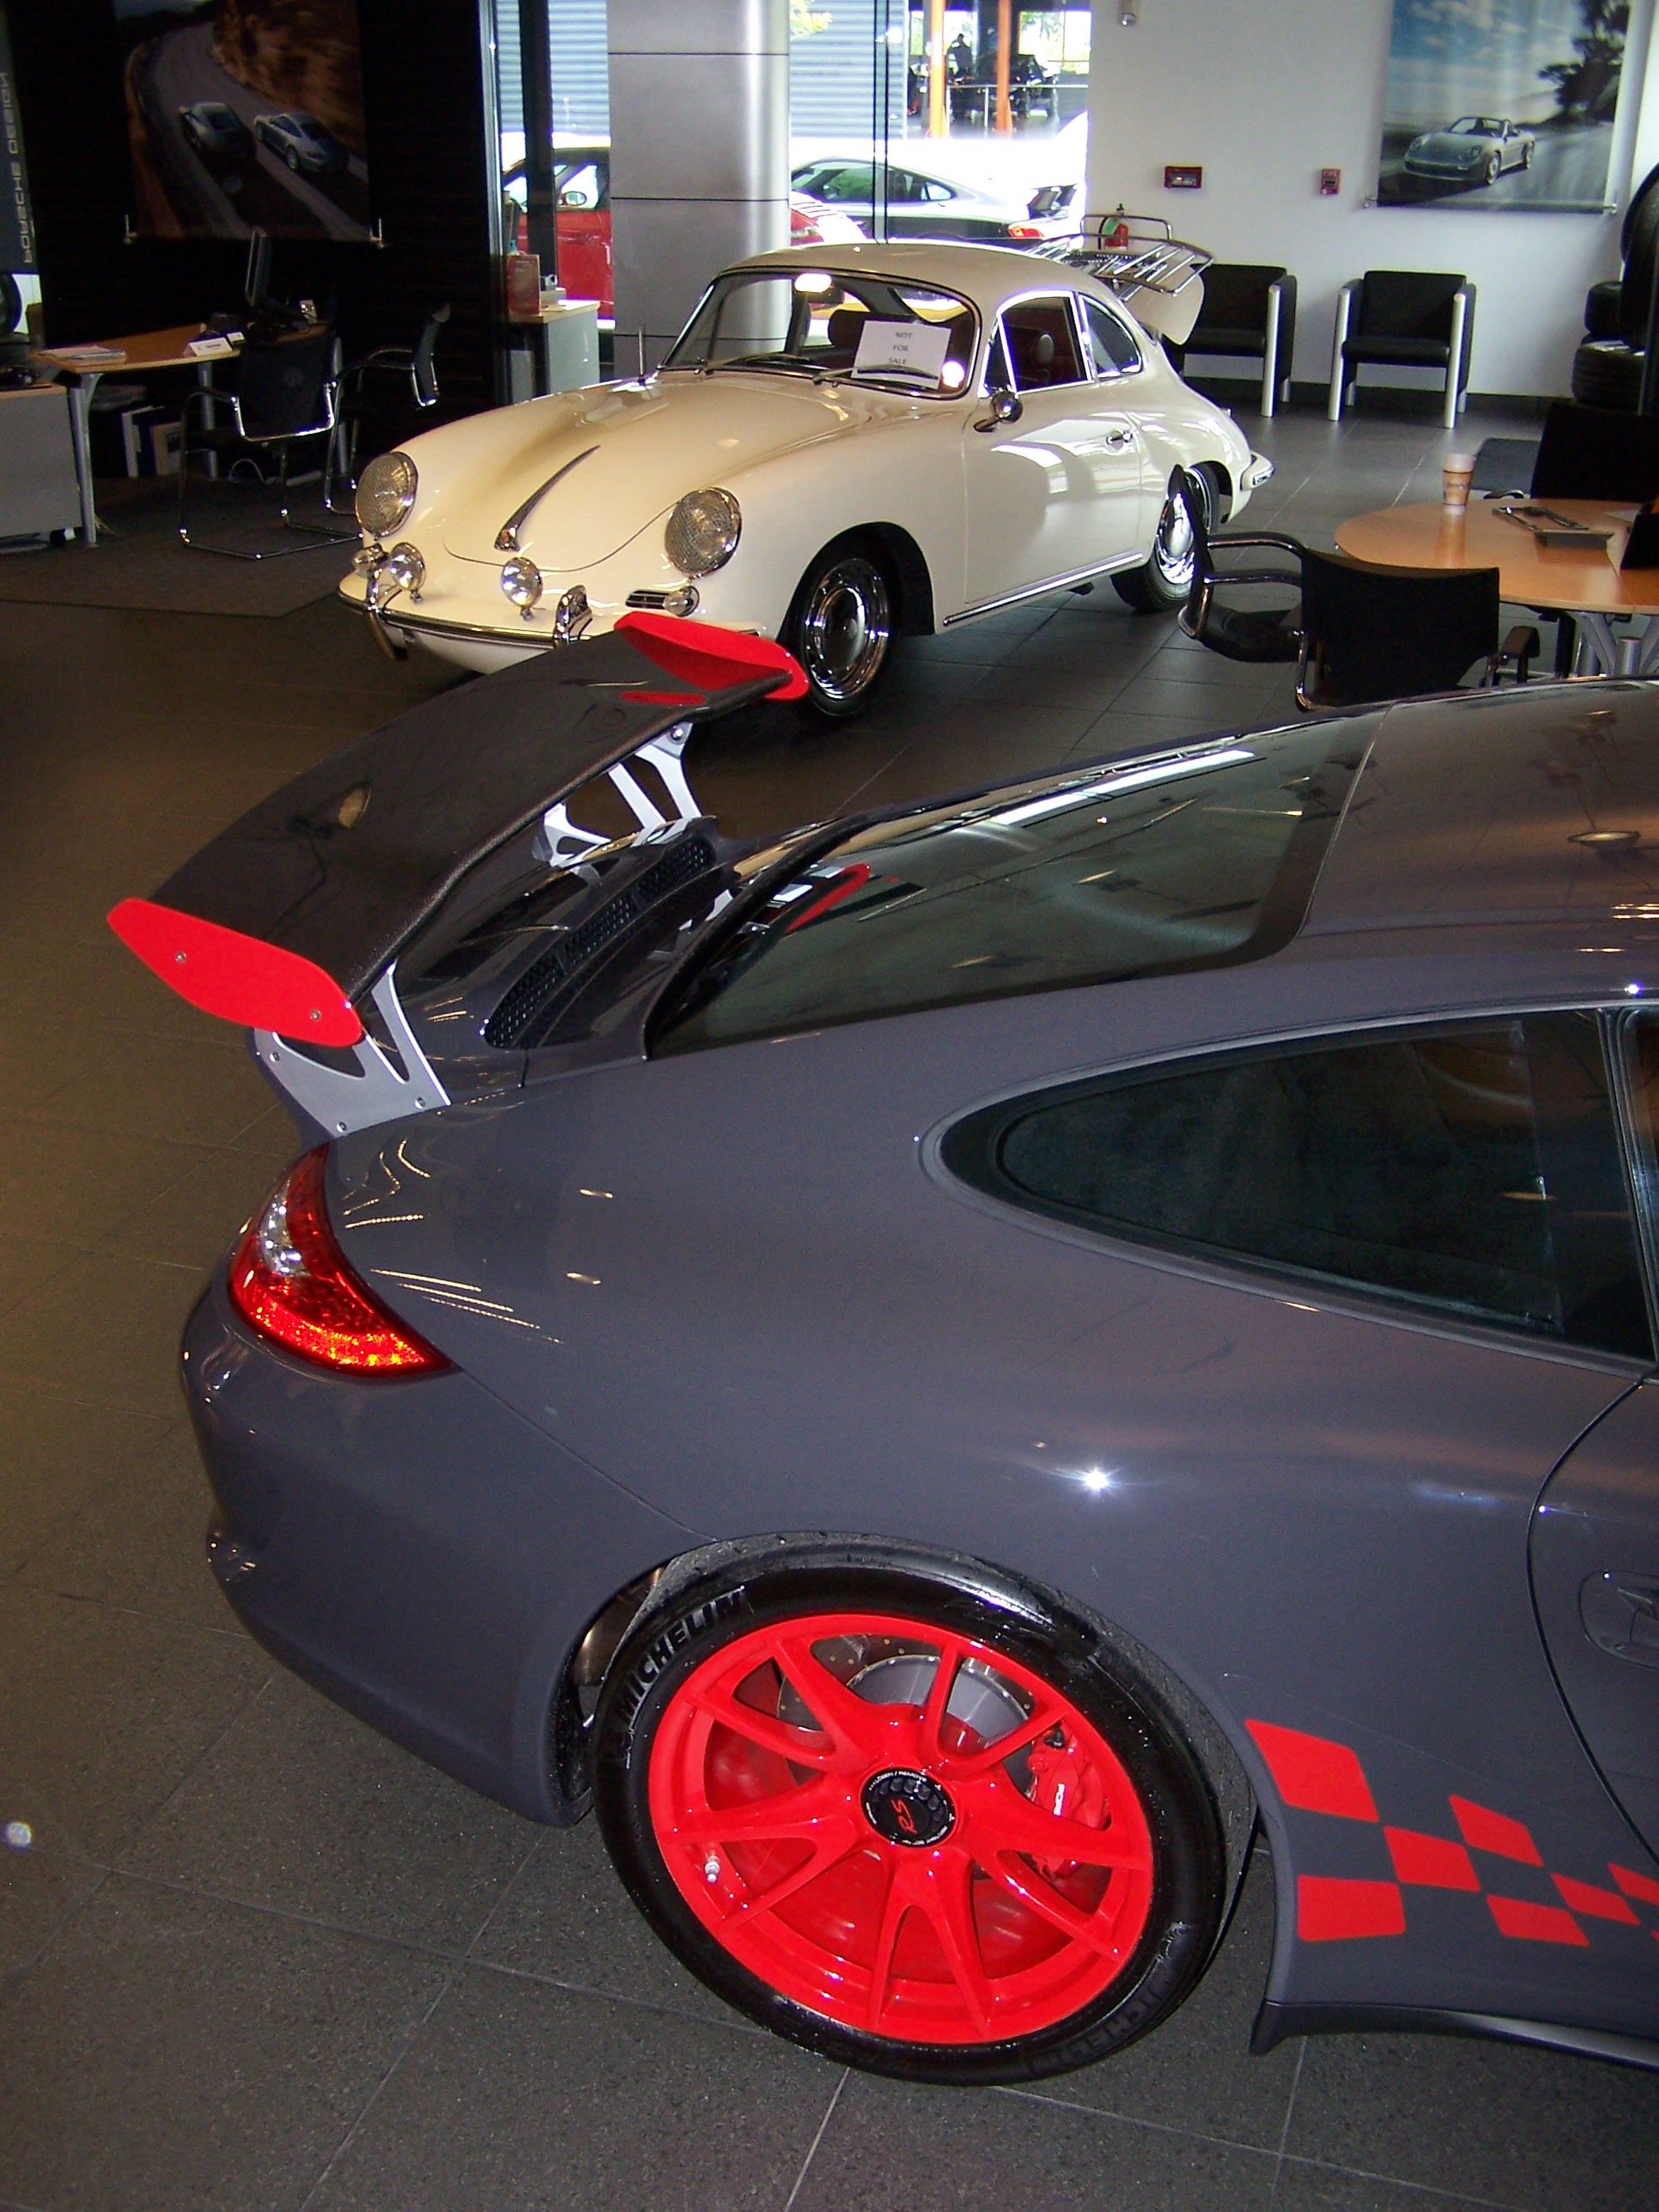 Red Wheel Weiser Online Bookstore: 2010 Porsche GT3 RS In Grey Black With Red Wheels And